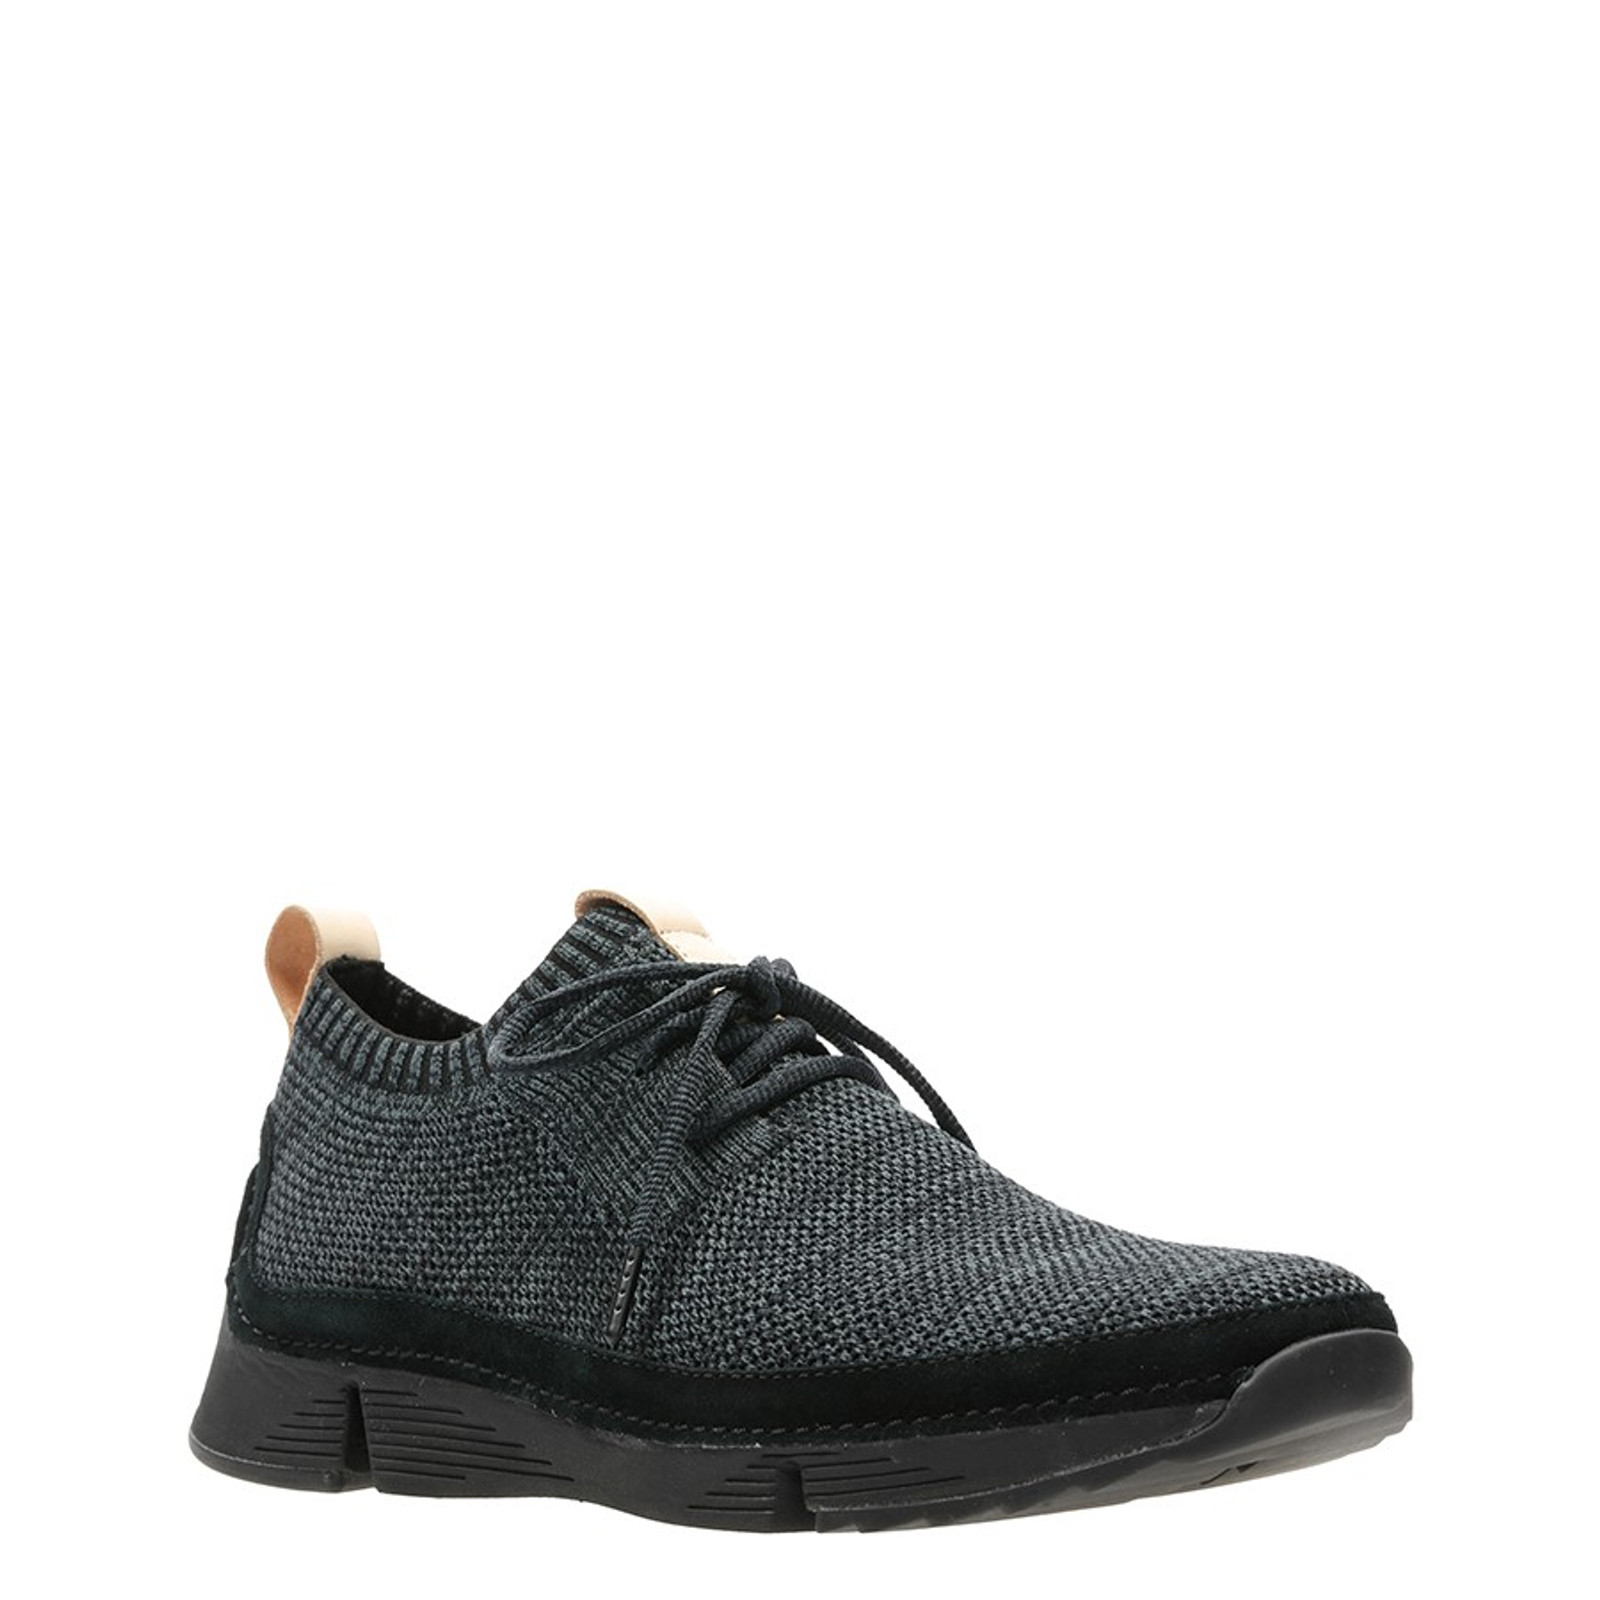 Clarks Mens TRI NATIVE Black